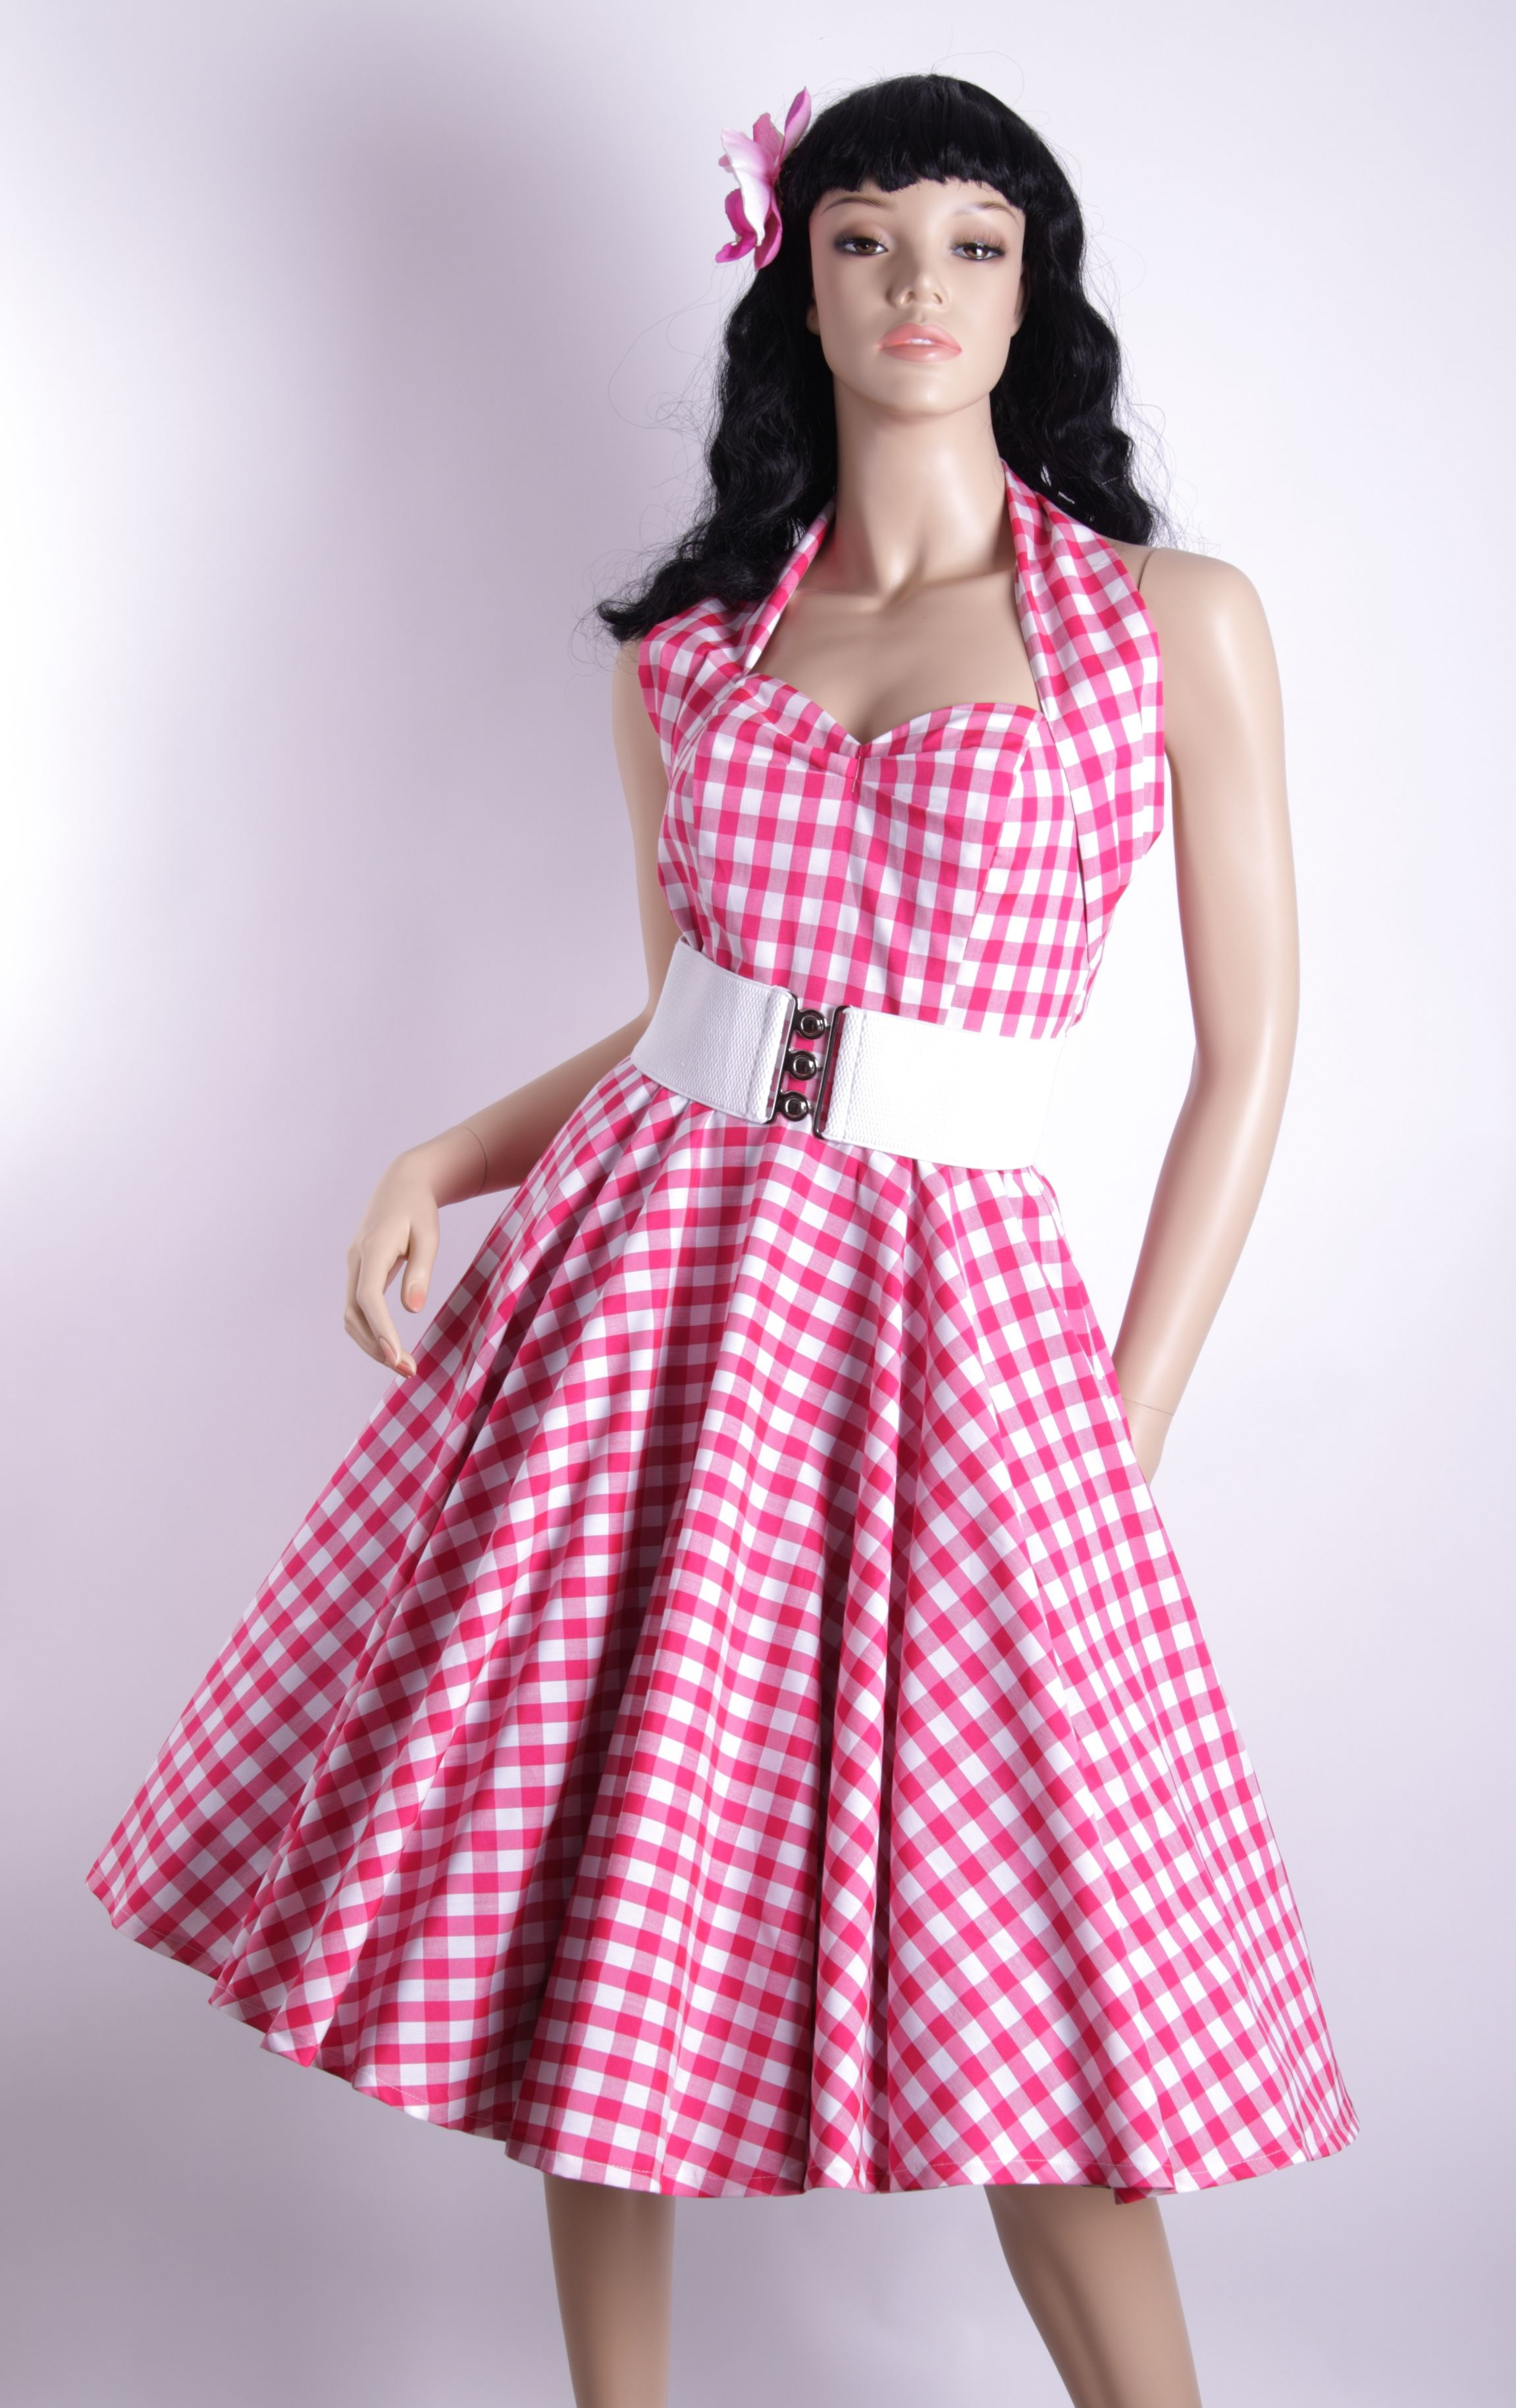 10 Best images about rockabilly dresses on Pinterest - Pink roses ...